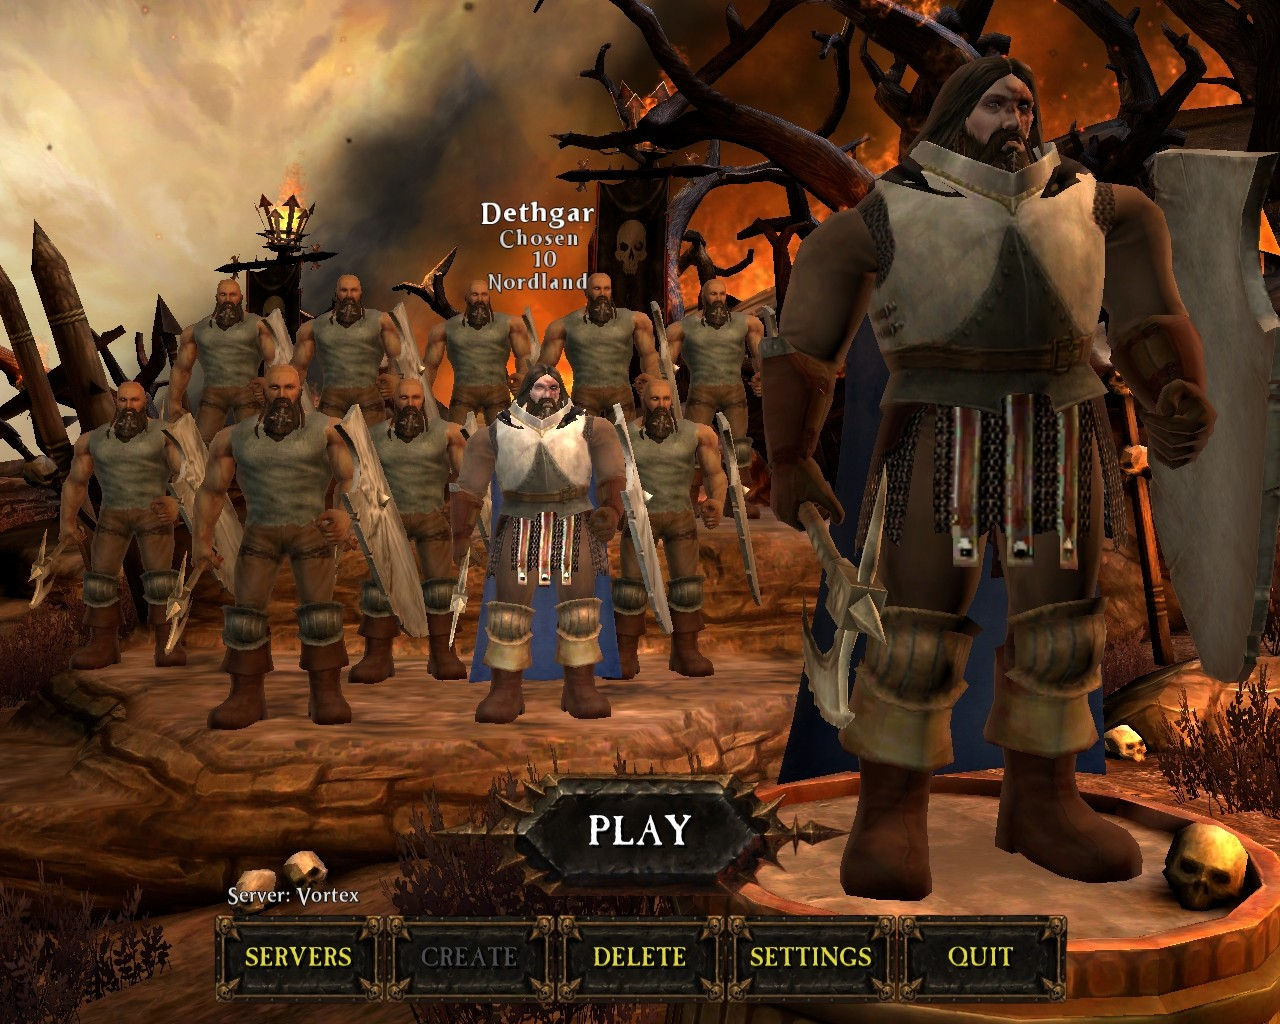 Warhammer Online: Age of Reckoning - Chaos Chosen Squad